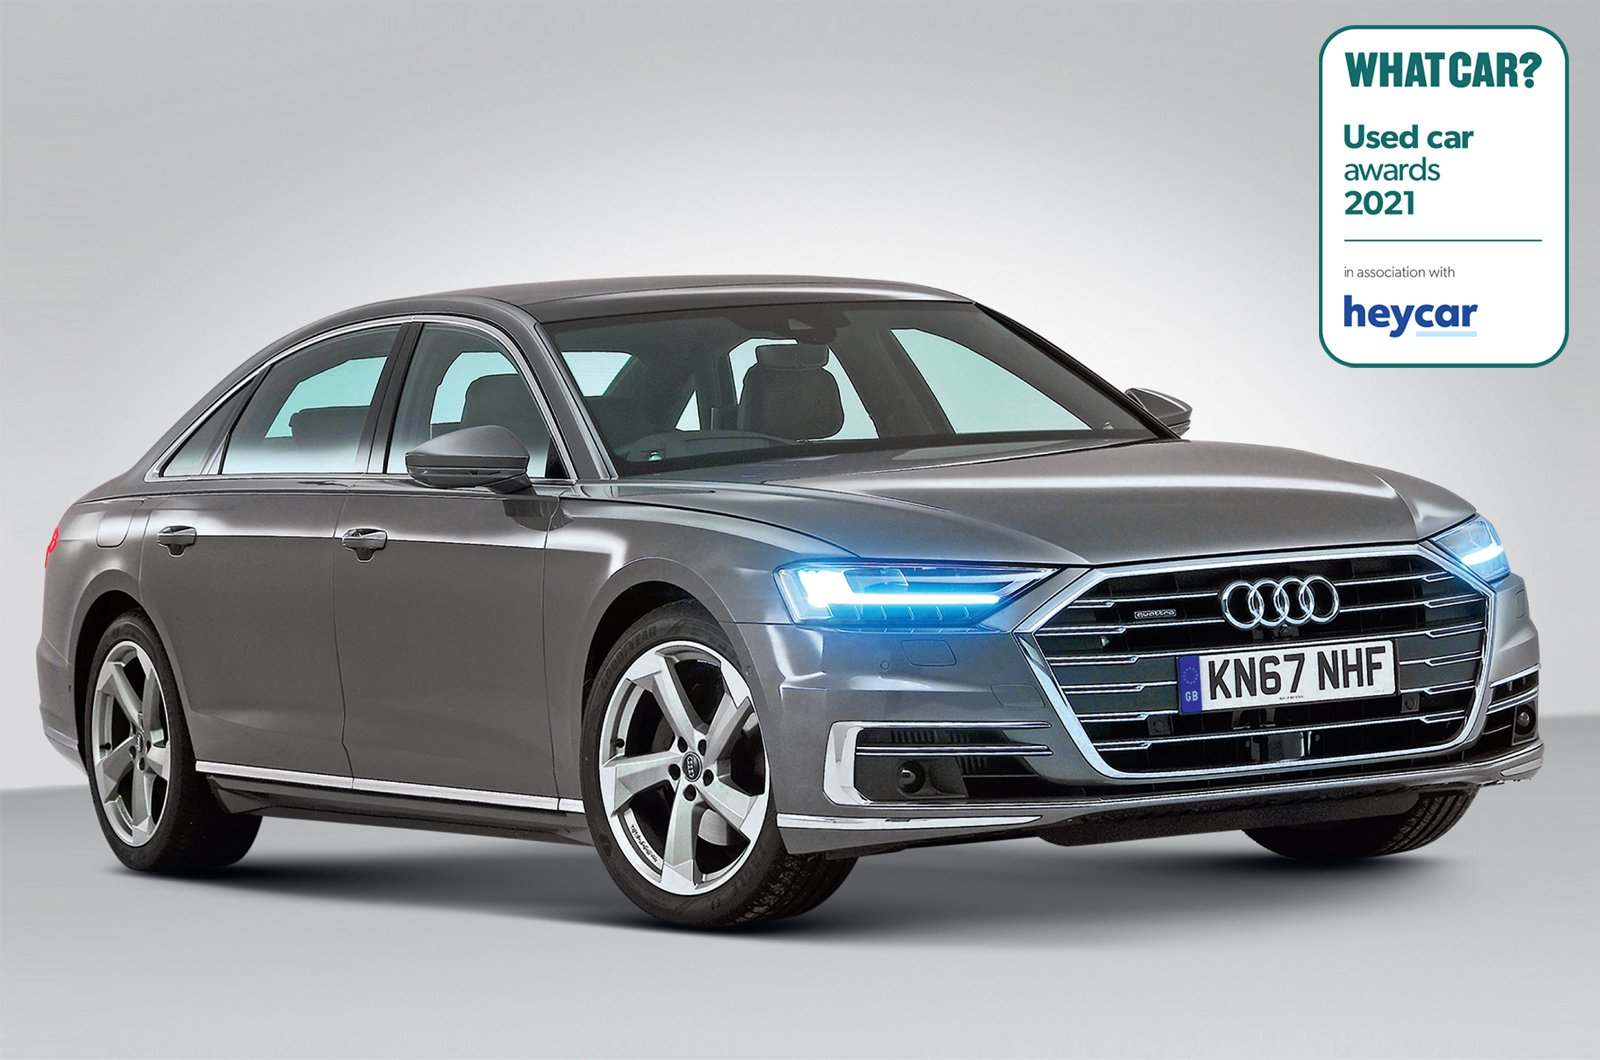 Used Car Awards 2021 - Audi A8